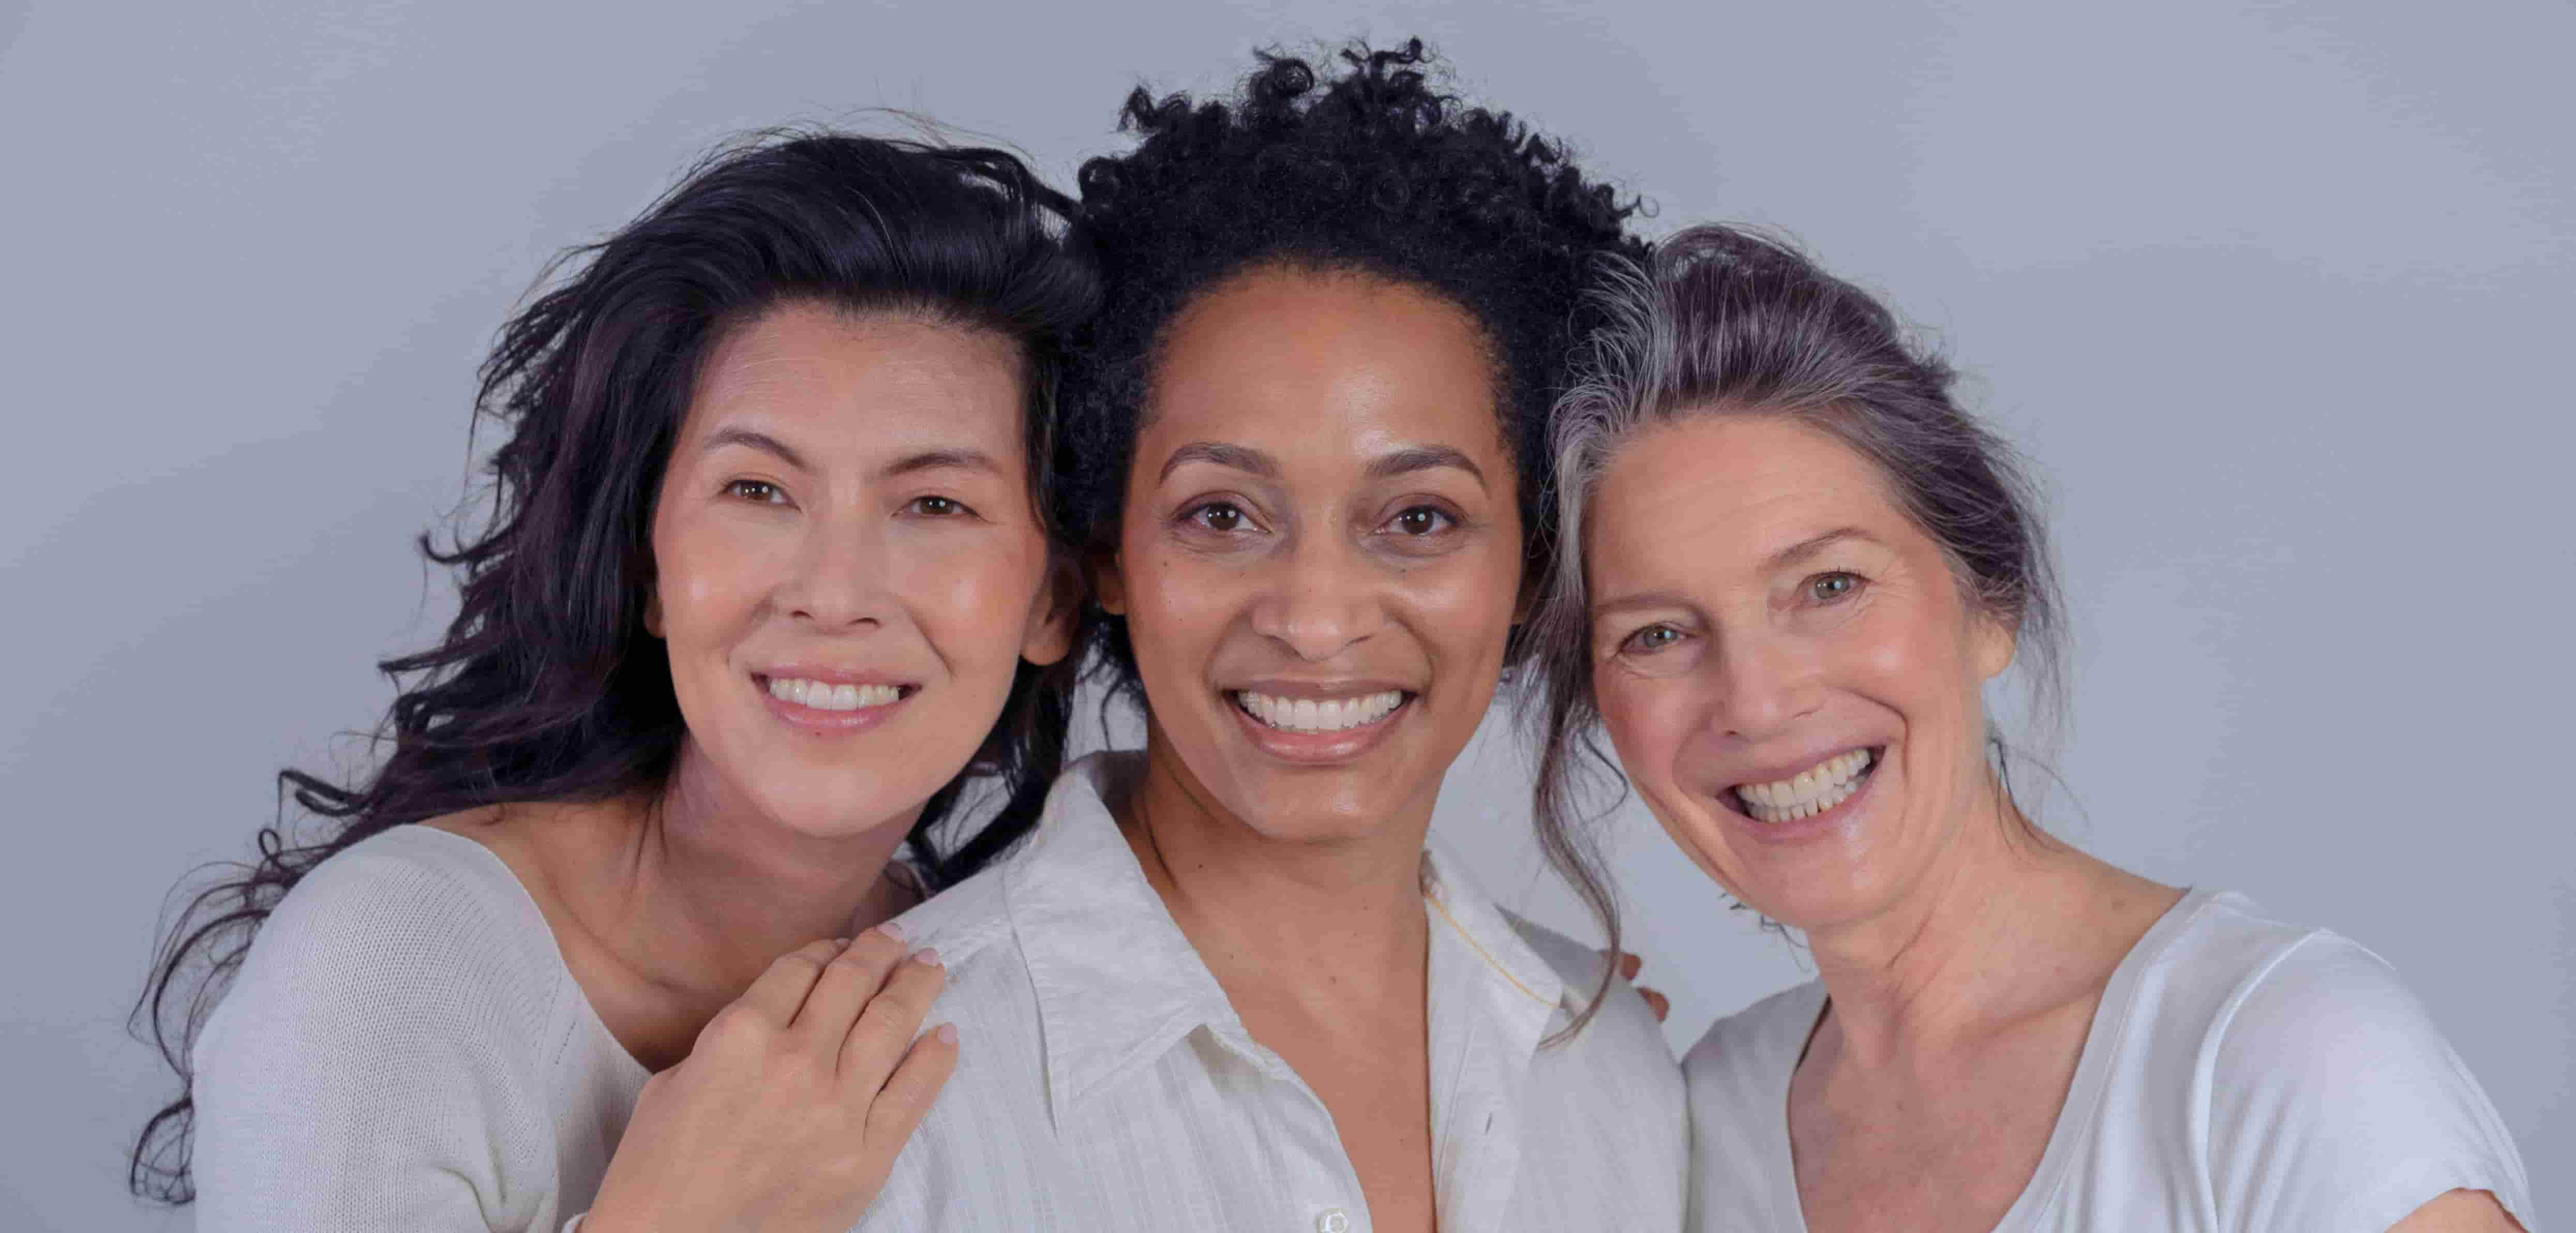 Three women smiling in front of the camera - womens health initiative study